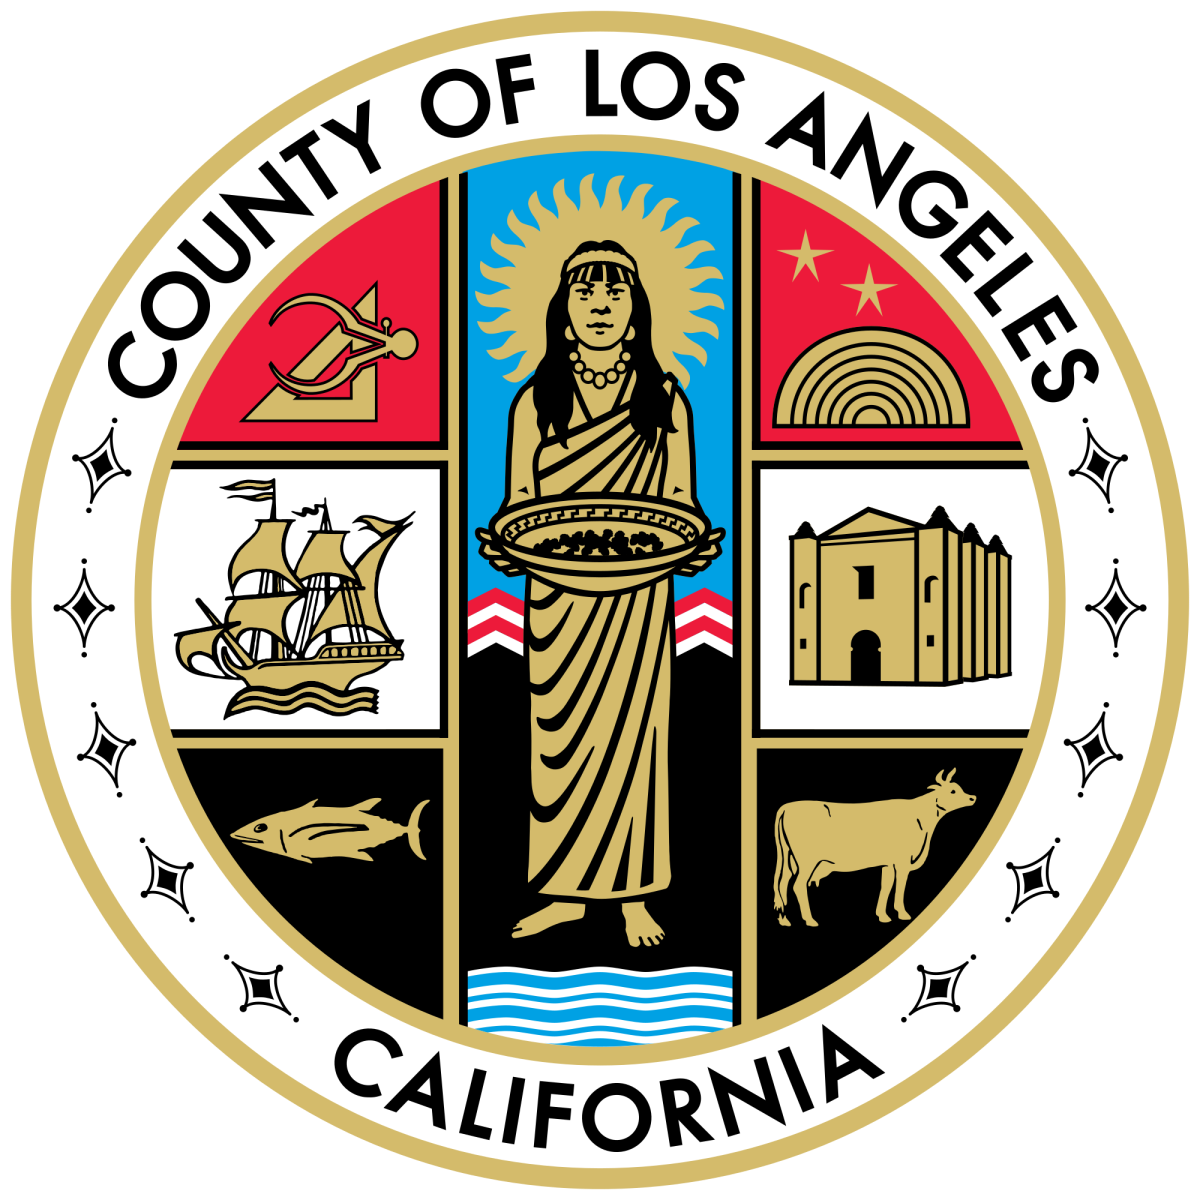 1200px-Seal_of_Los_Angeles_County,_California.svg